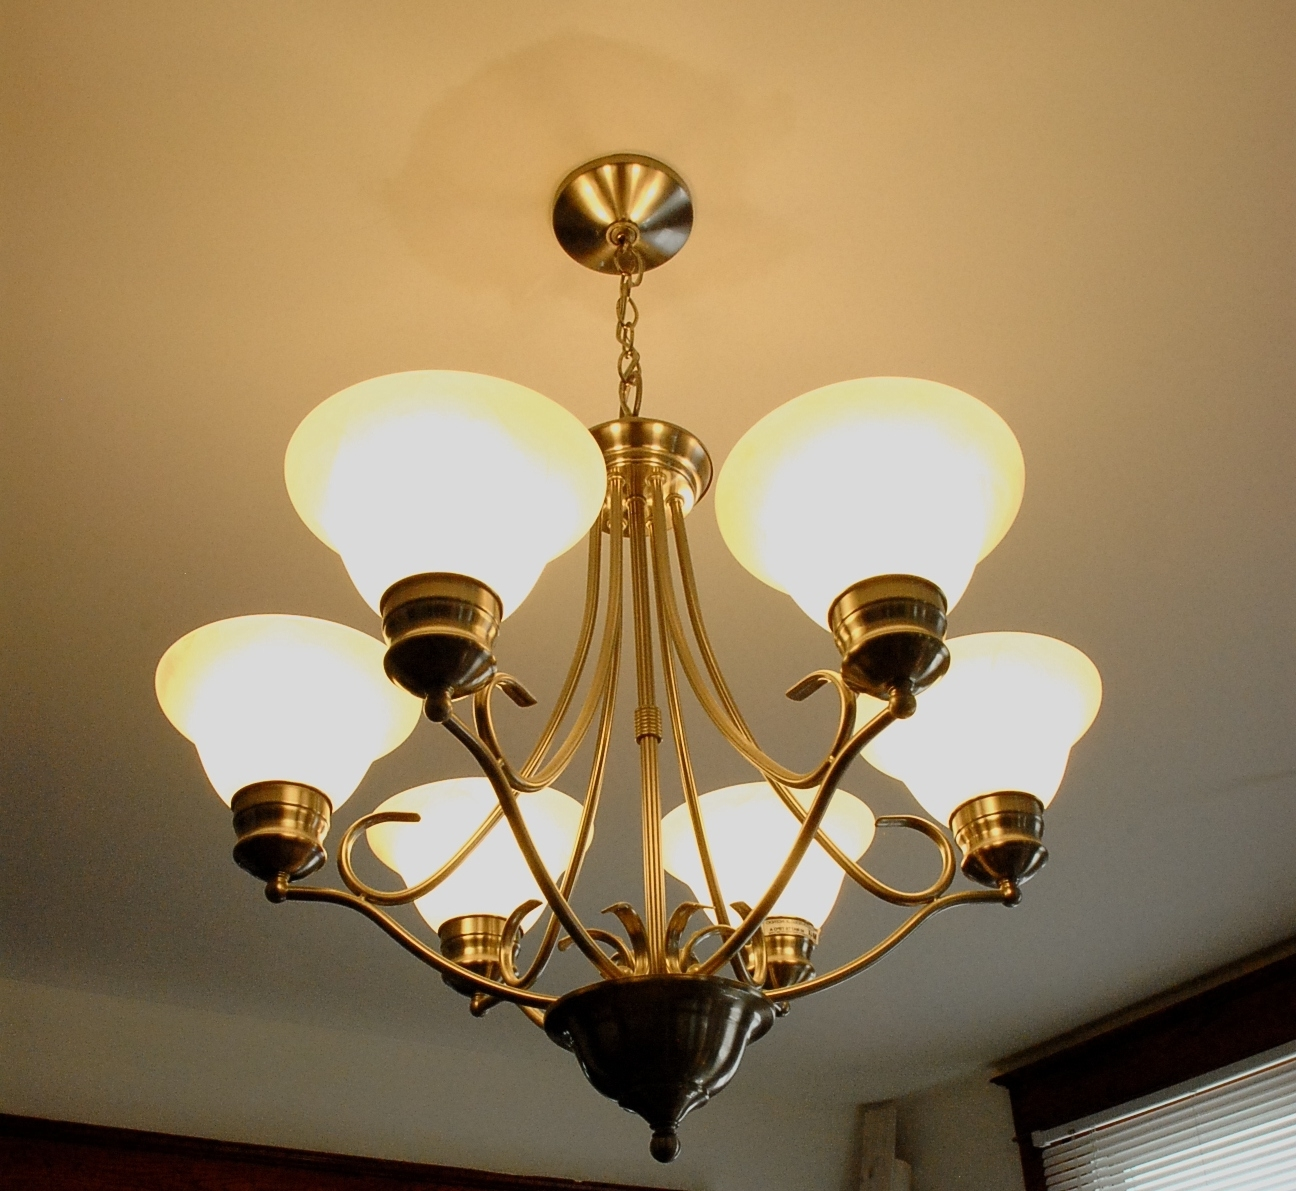 Chandeliers, Wall Sconces, And Light Fixtures (View 5 of 20)